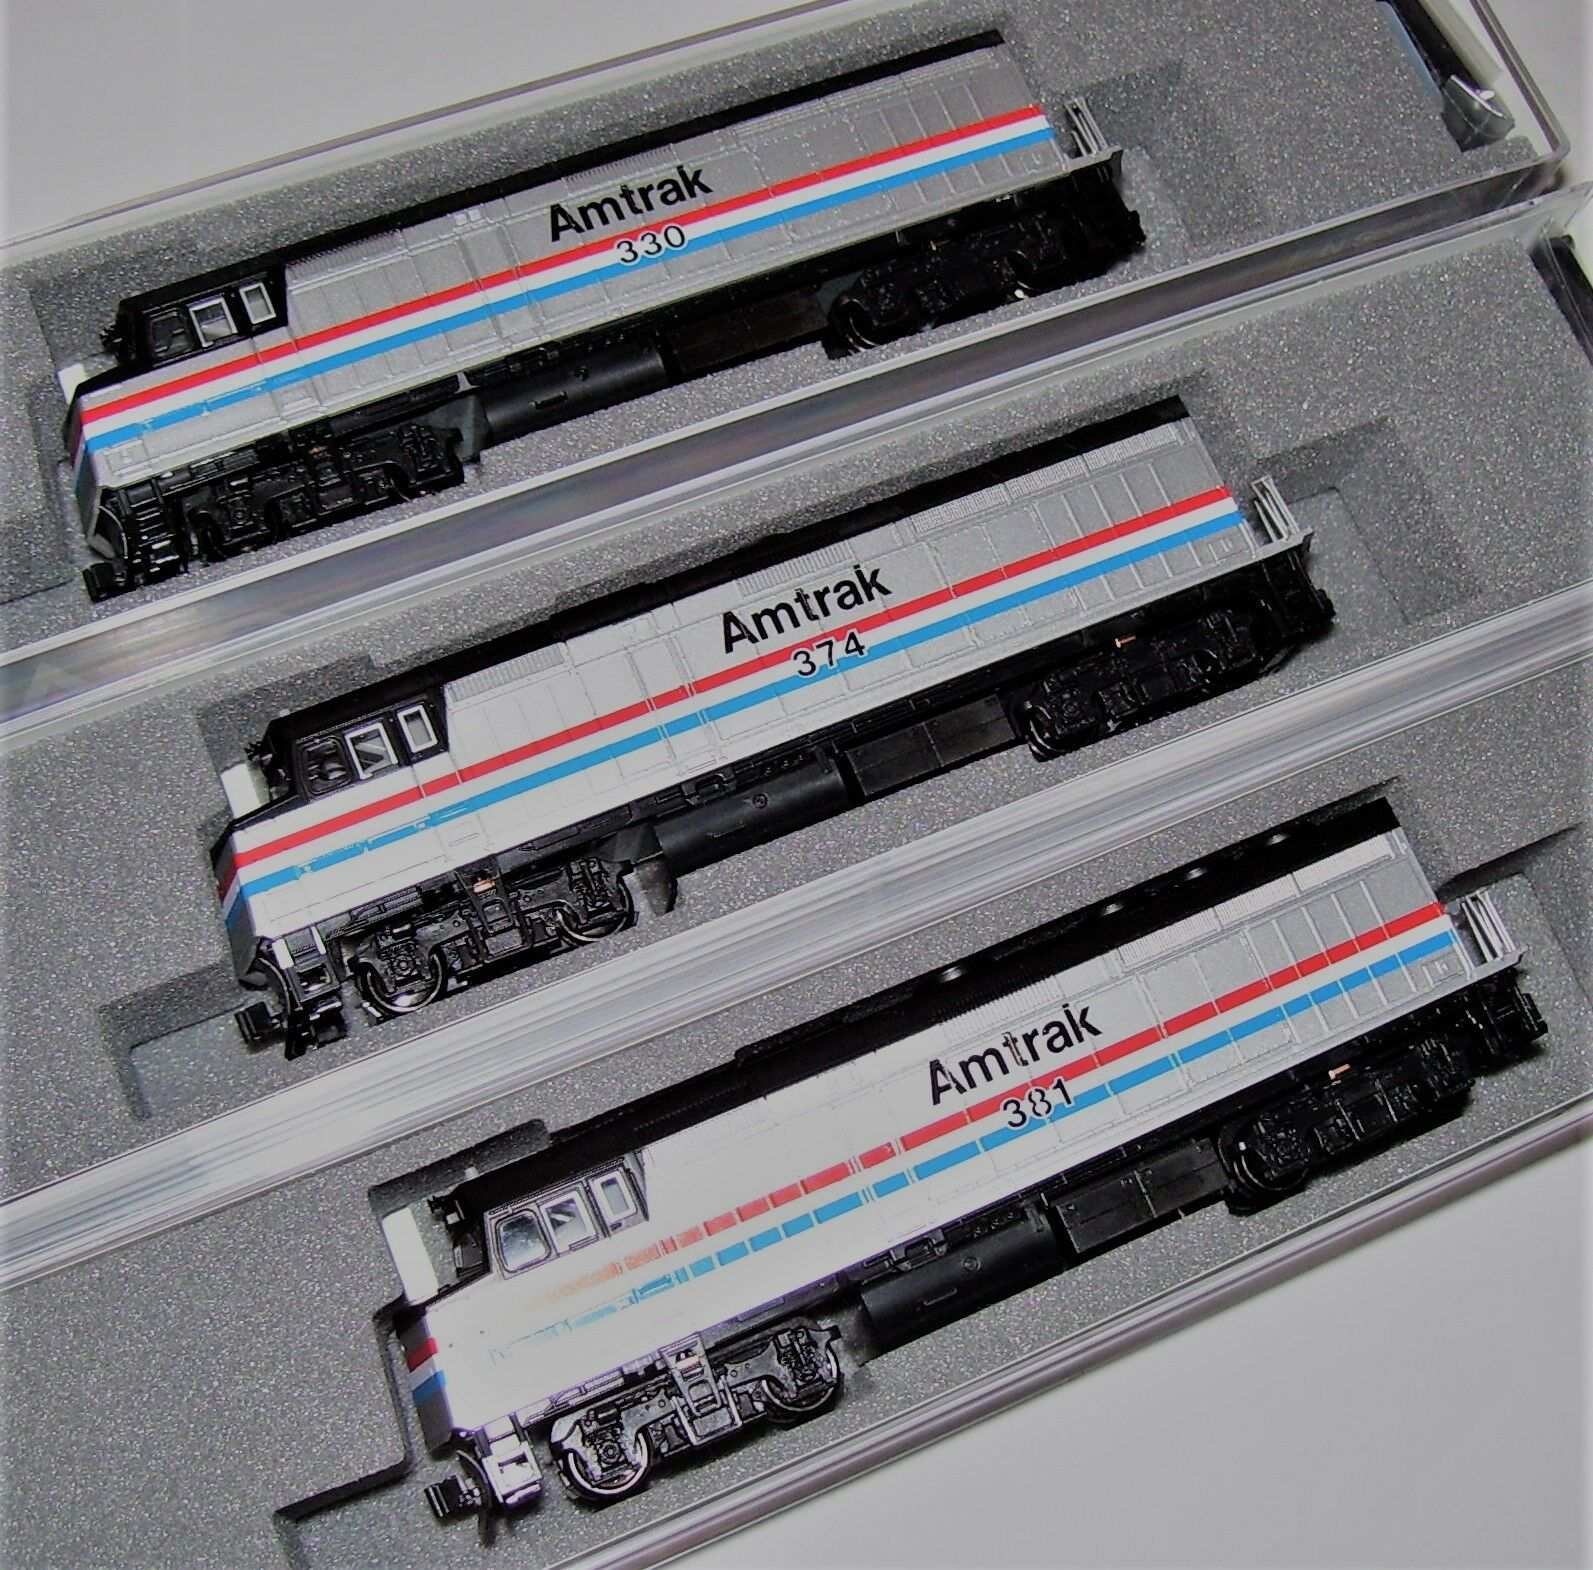 KATO 3 LOCO SET 1766105 + 1766106 + 1766107 N F40PH Amtrak Ph III 330/374/381